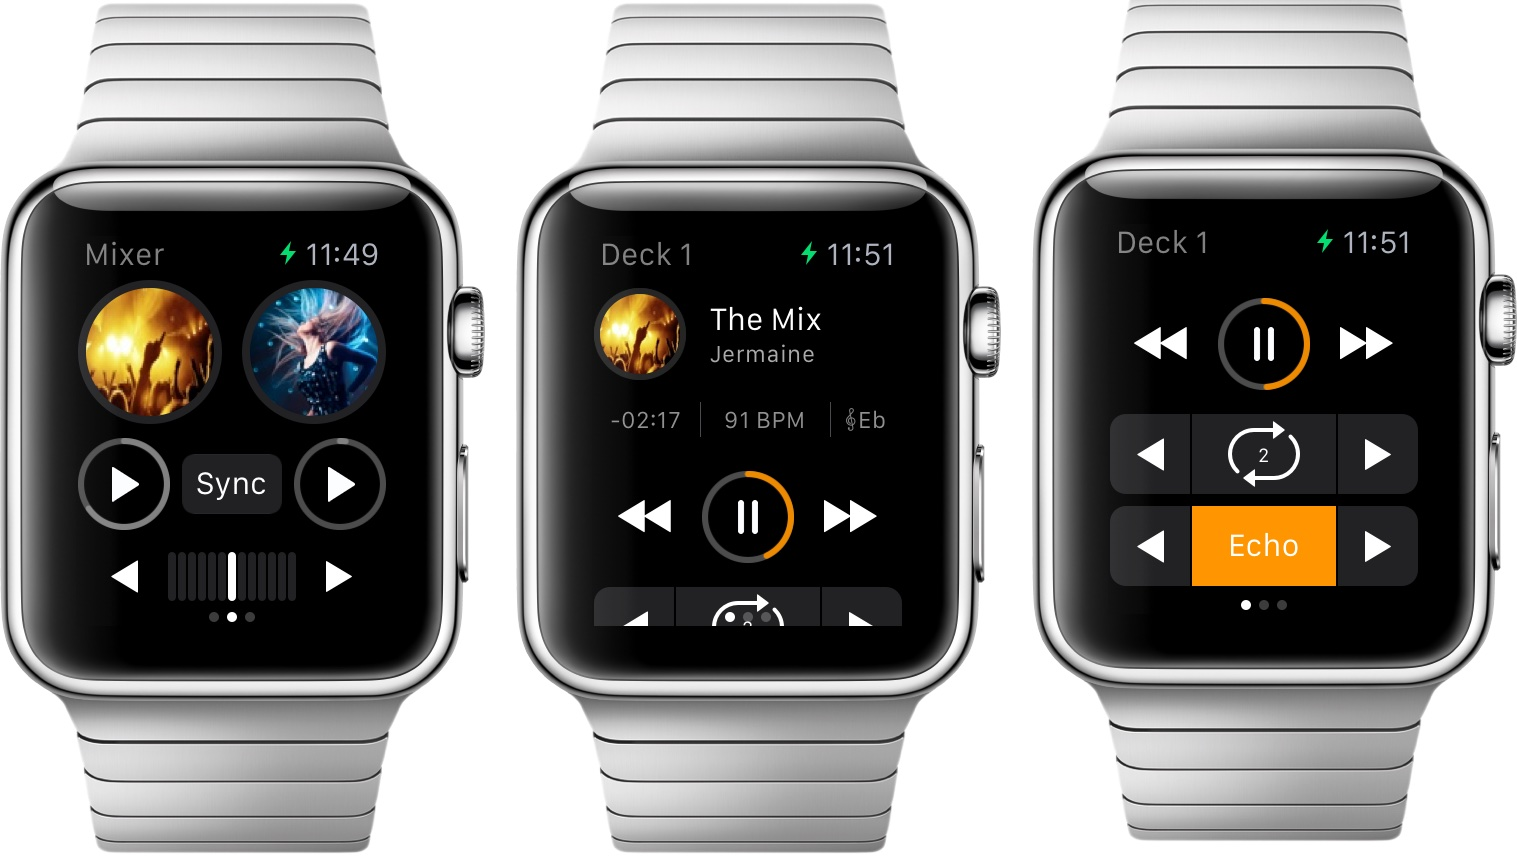 djay for Apple Watch screenshot 003